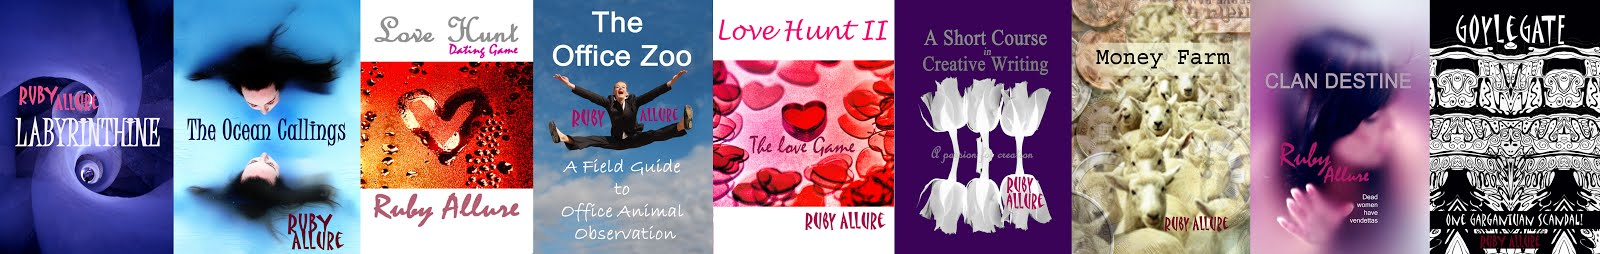 Ruby Allure's Books